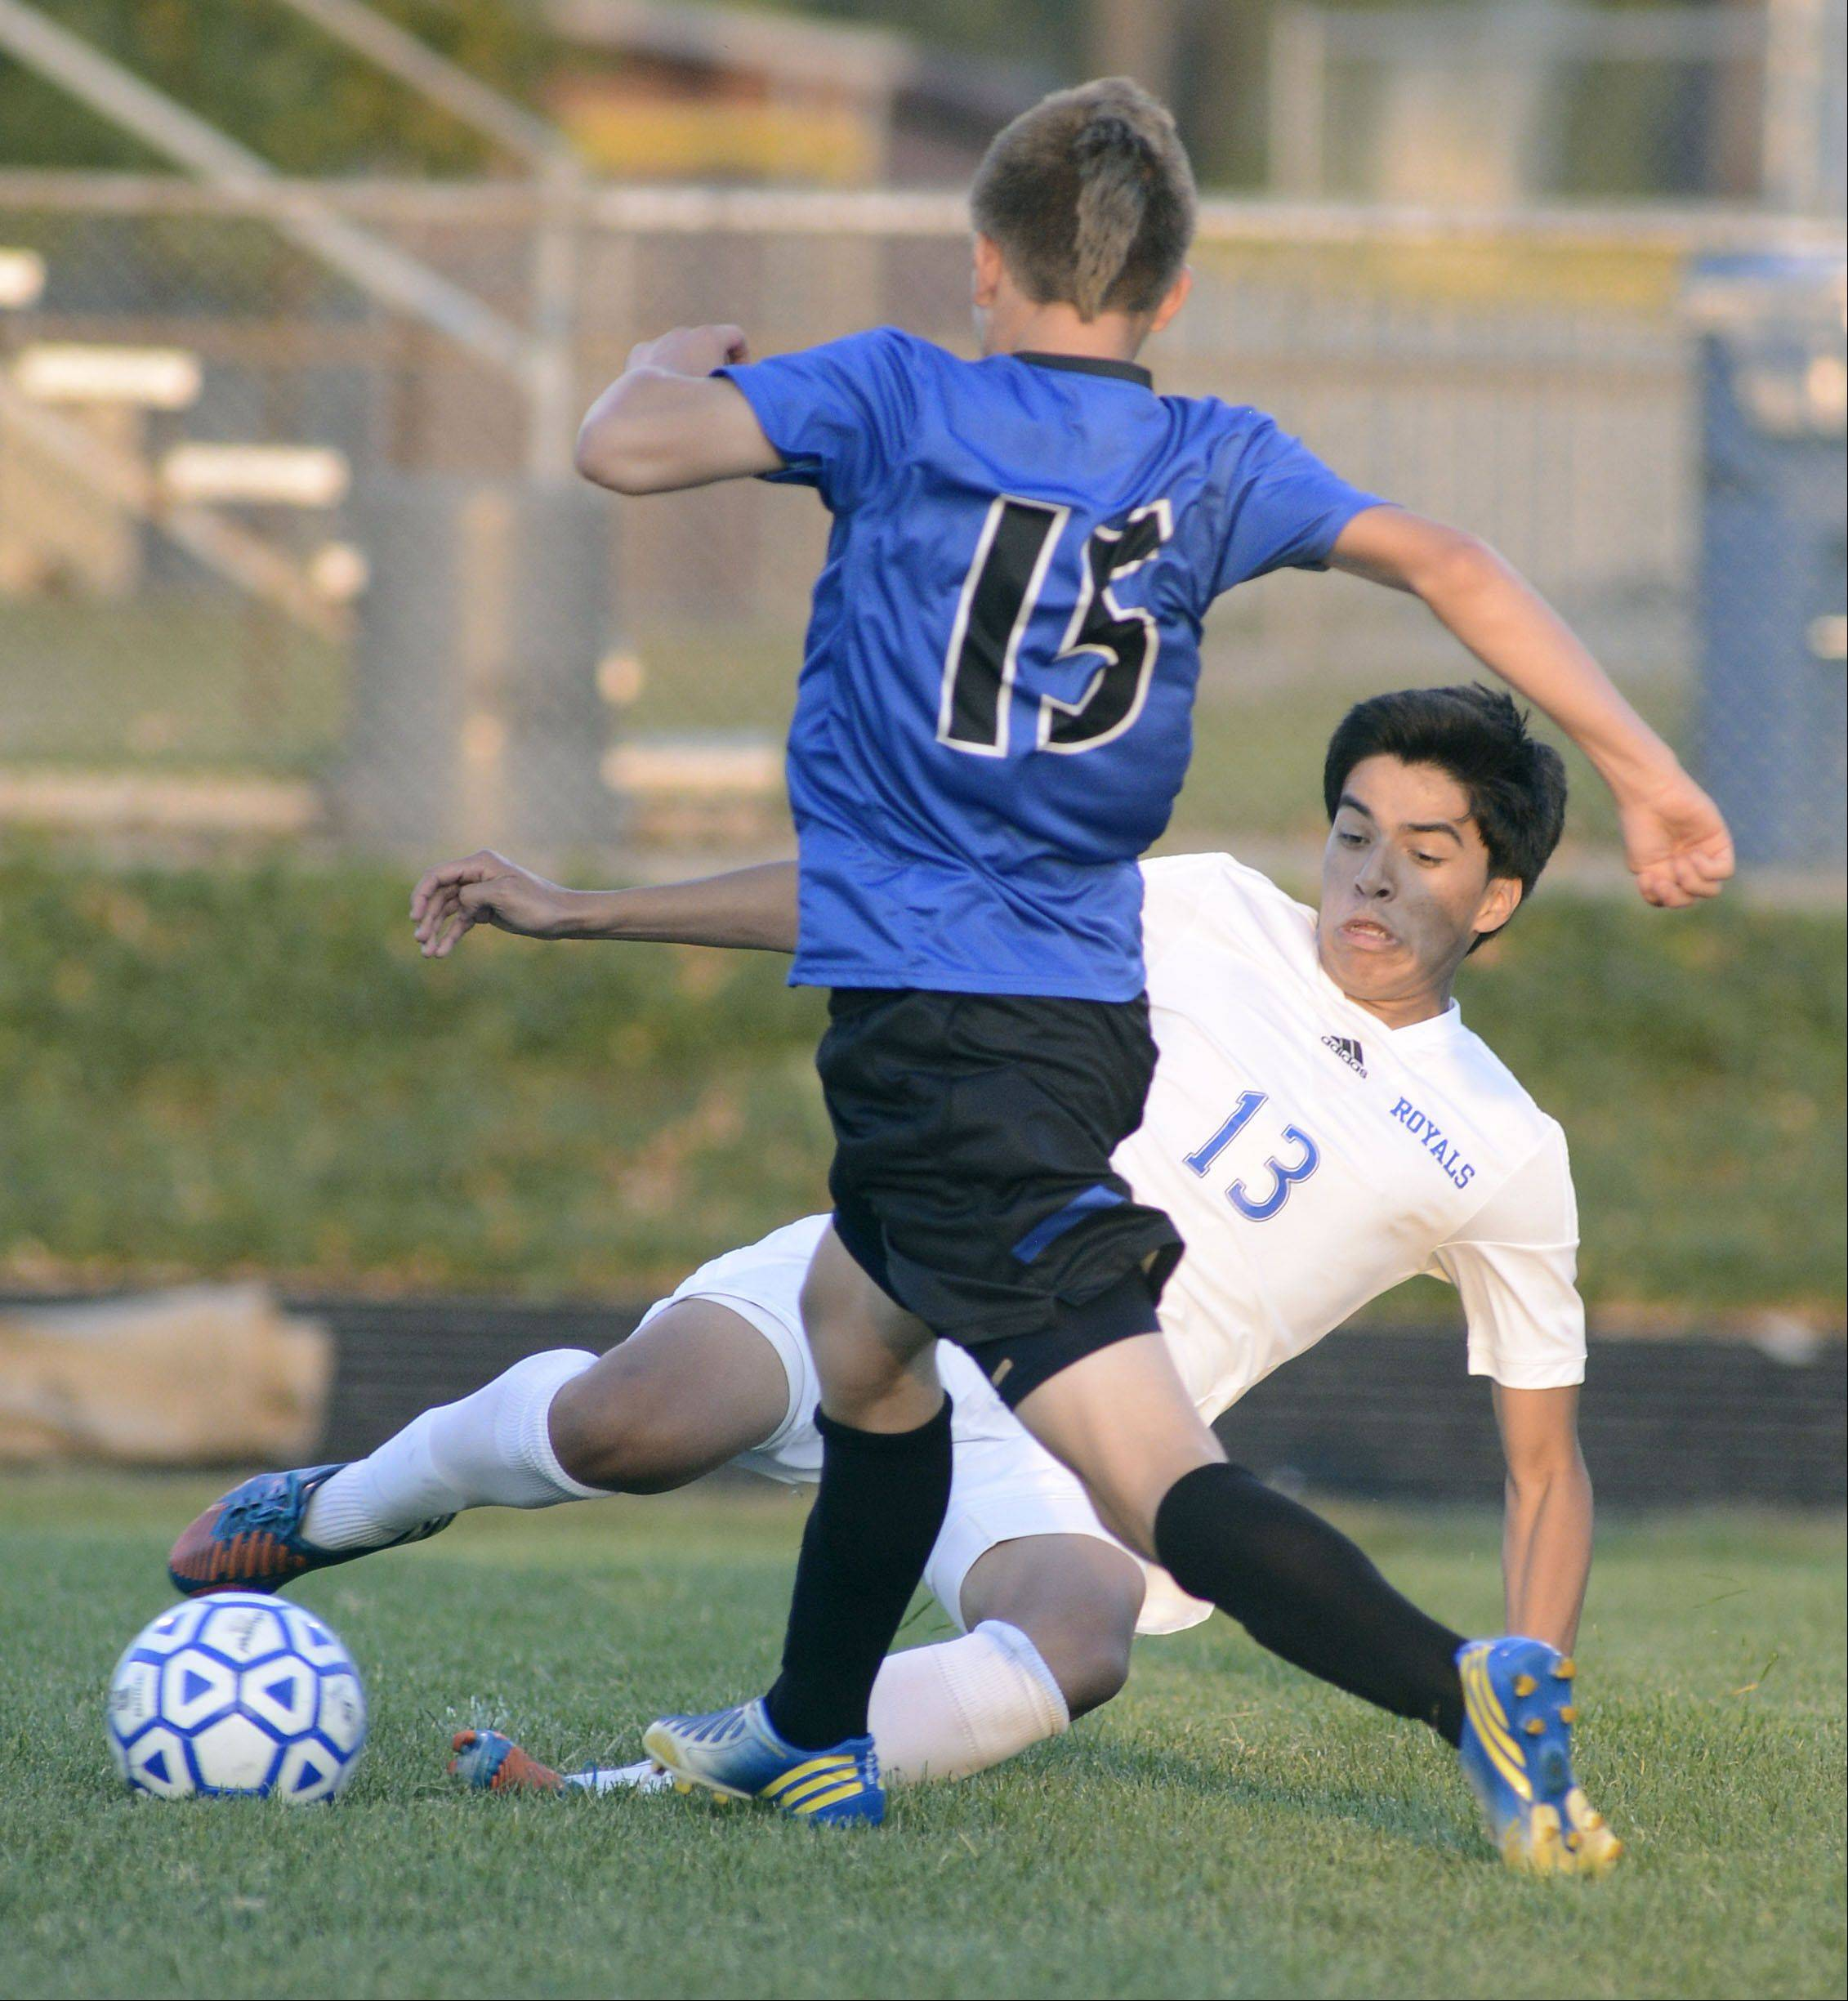 Laura Stoecker/lstoecker@dailyherald.comLarkin's Hector Mendoza slides trying to kick the ball out of the line of St. Charles North's Ryan Olson in the first half on Tuesday at Memorial Field in Elgin.